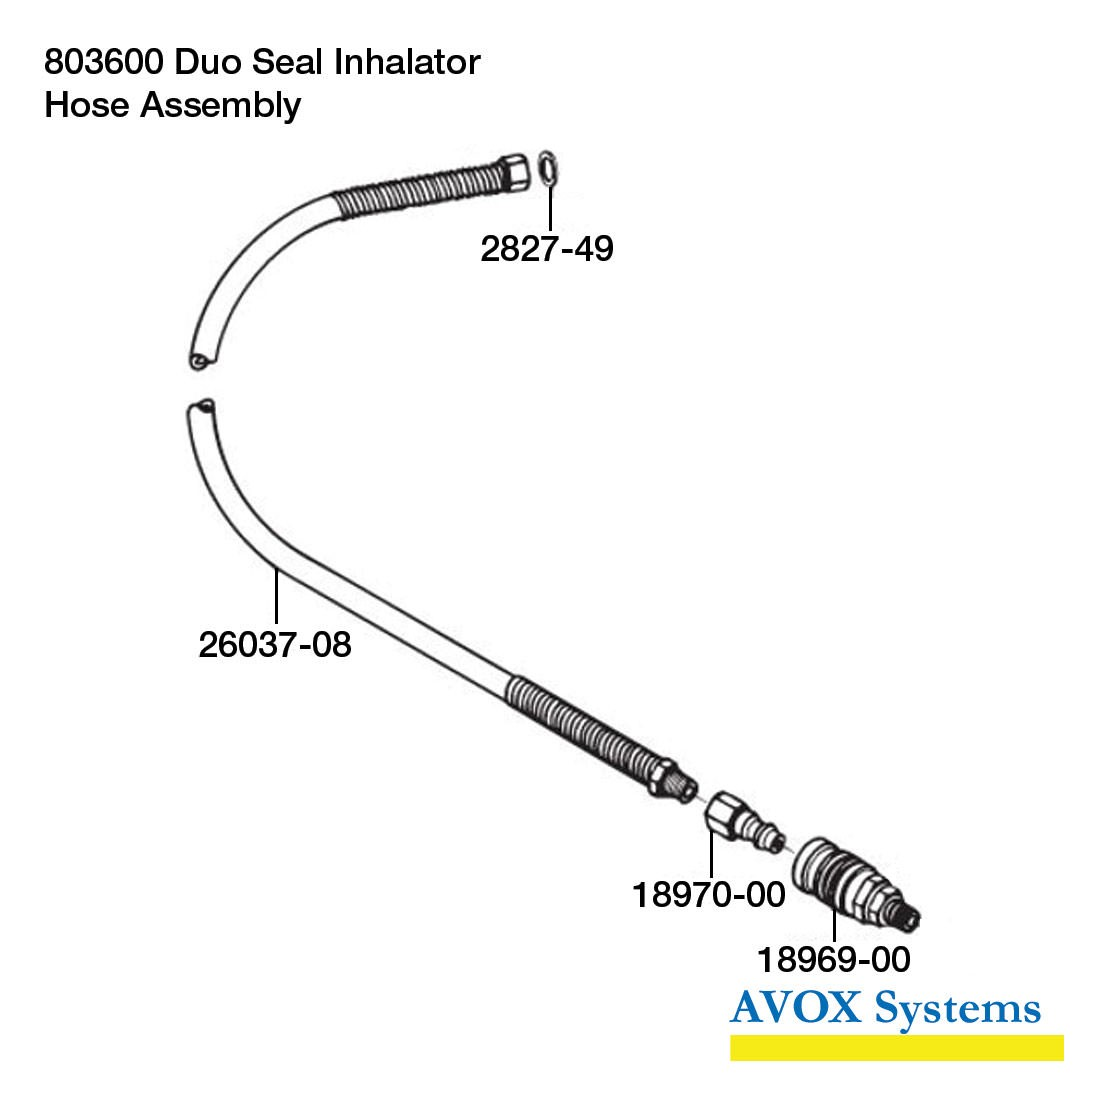 Avox Series 803600 Duo Seal Inhalator without 1st Stage Regulator Assembly without Microphone Assembly 803600-02 - Hose Assembly